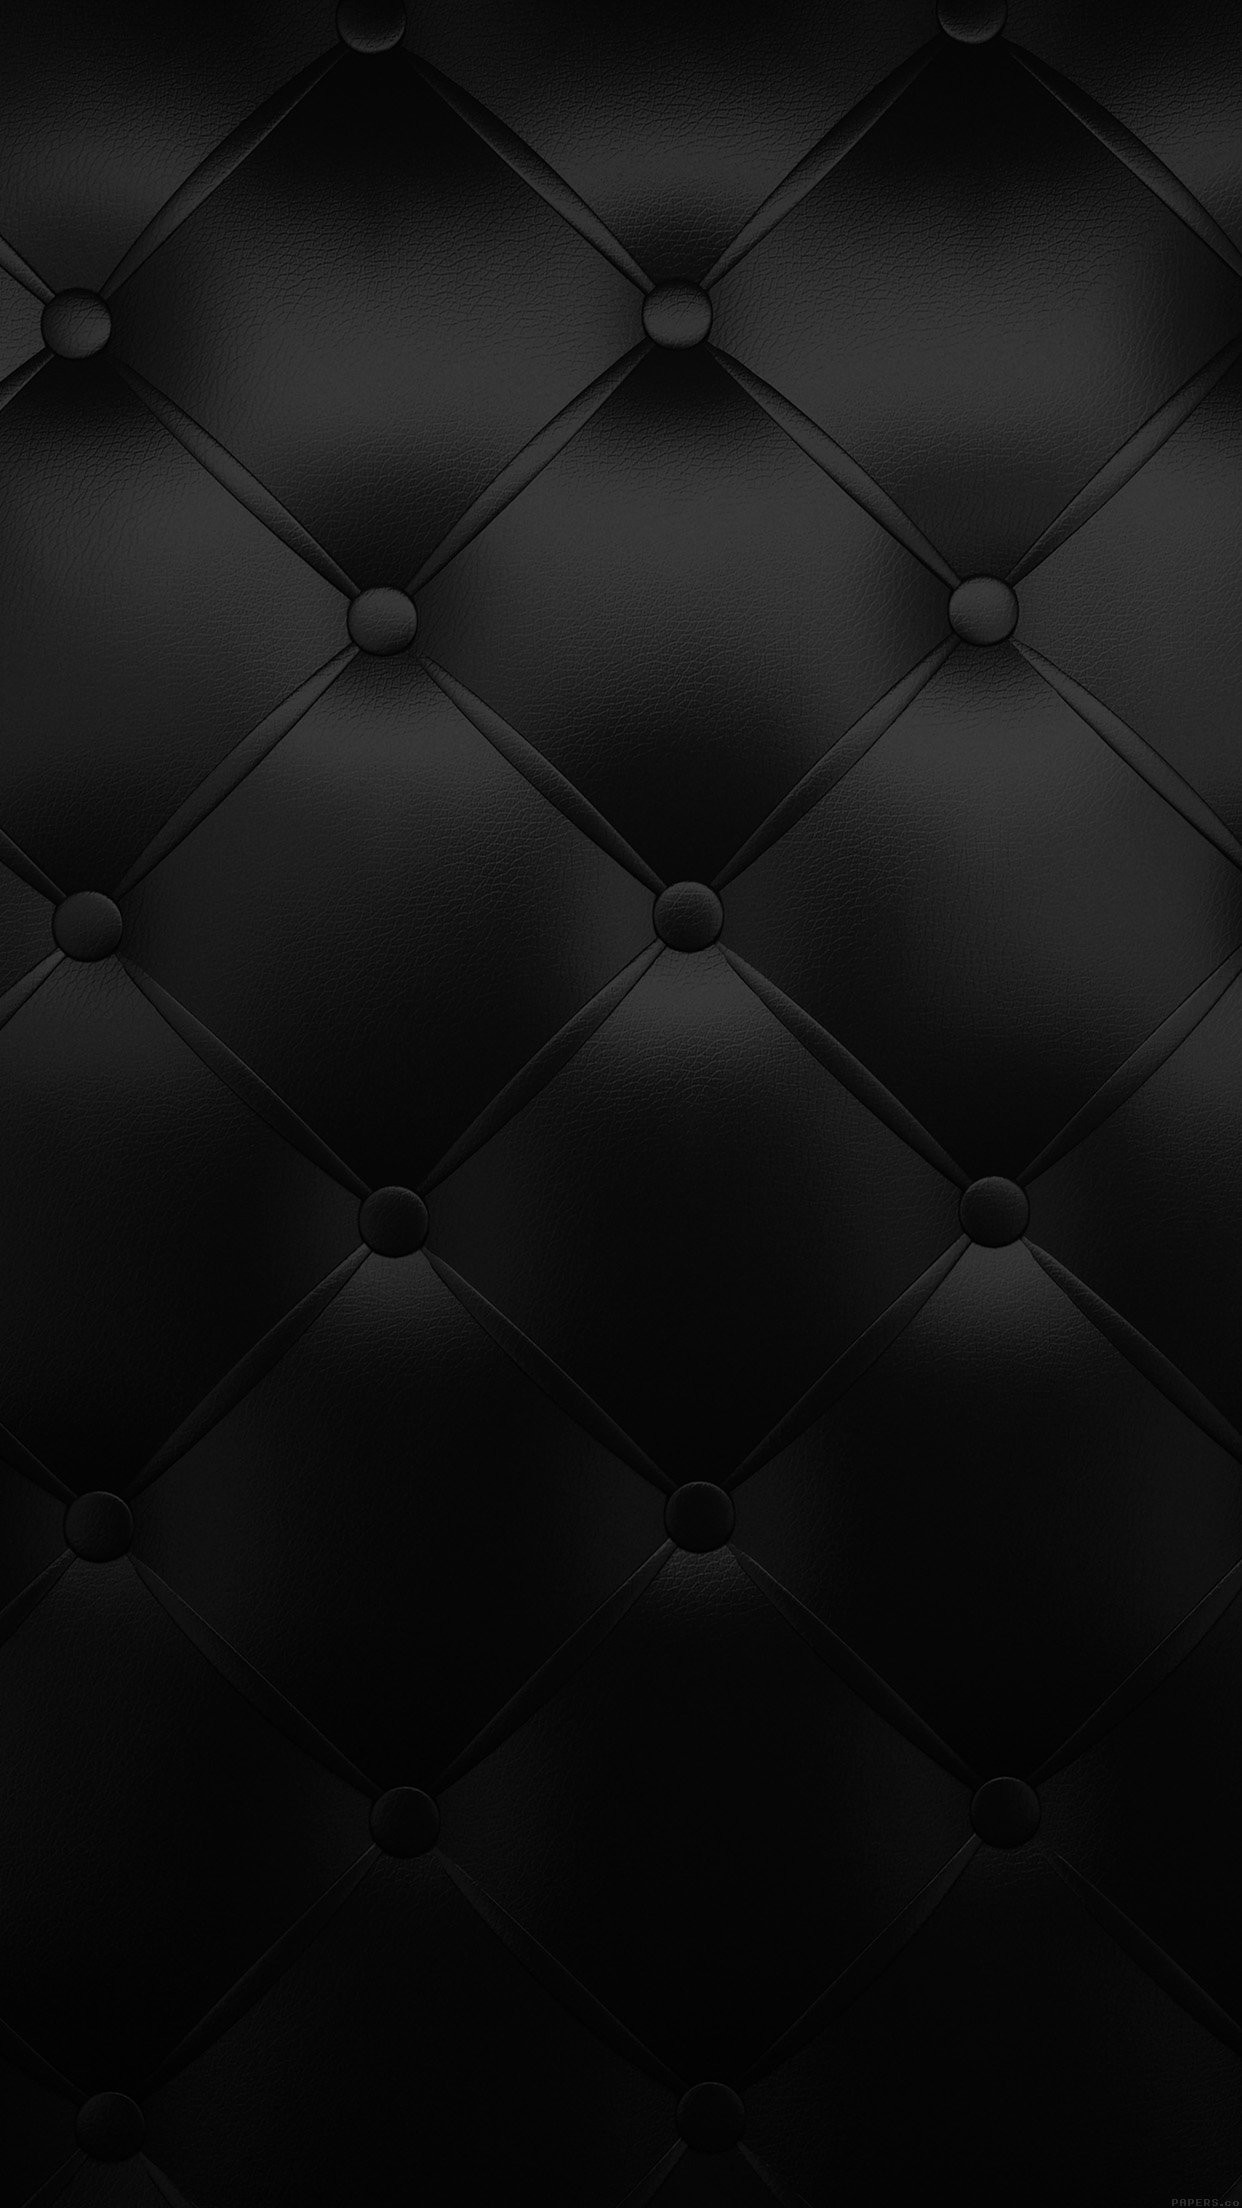 1242x2208, Space Black Abstract Cimon Cpage Pattern - Beautiful Black Wallpapers For Iphone - HD Wallpaper